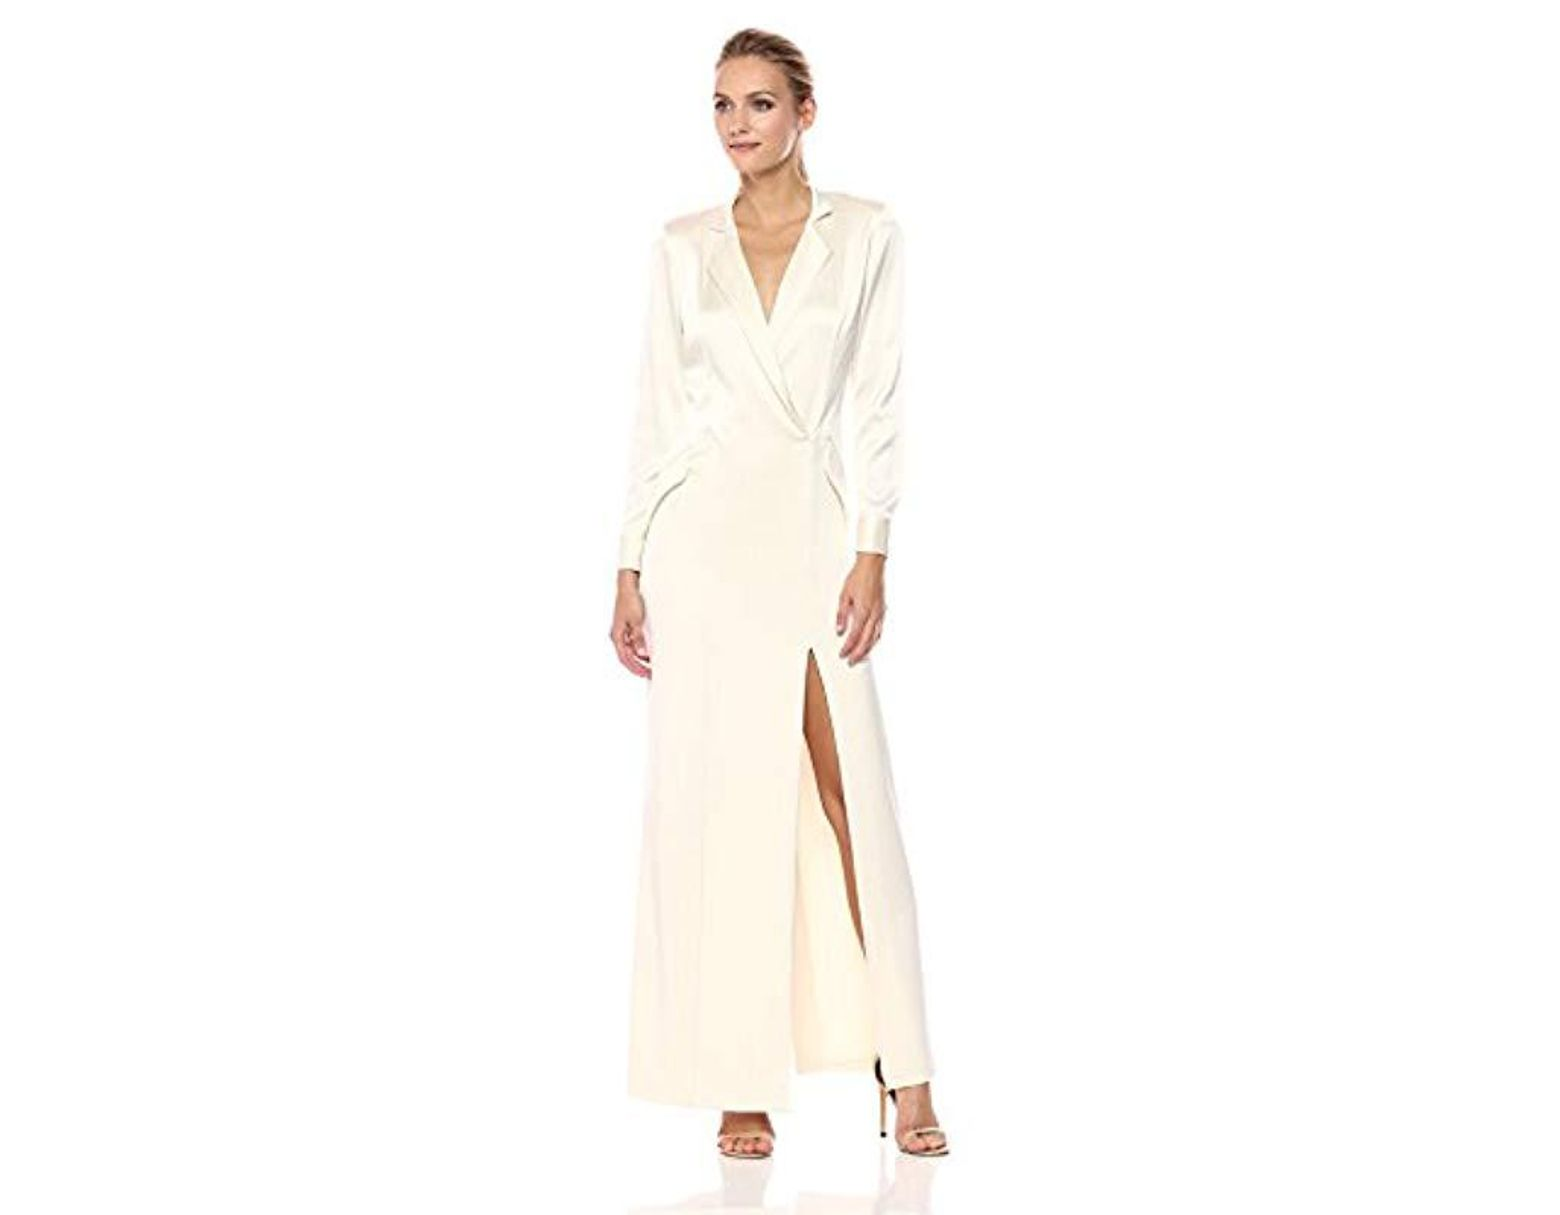 17bd1a38d5ac Halston Long Sleeve Shirt Dress Gown in Natural - Save 26% - Lyst